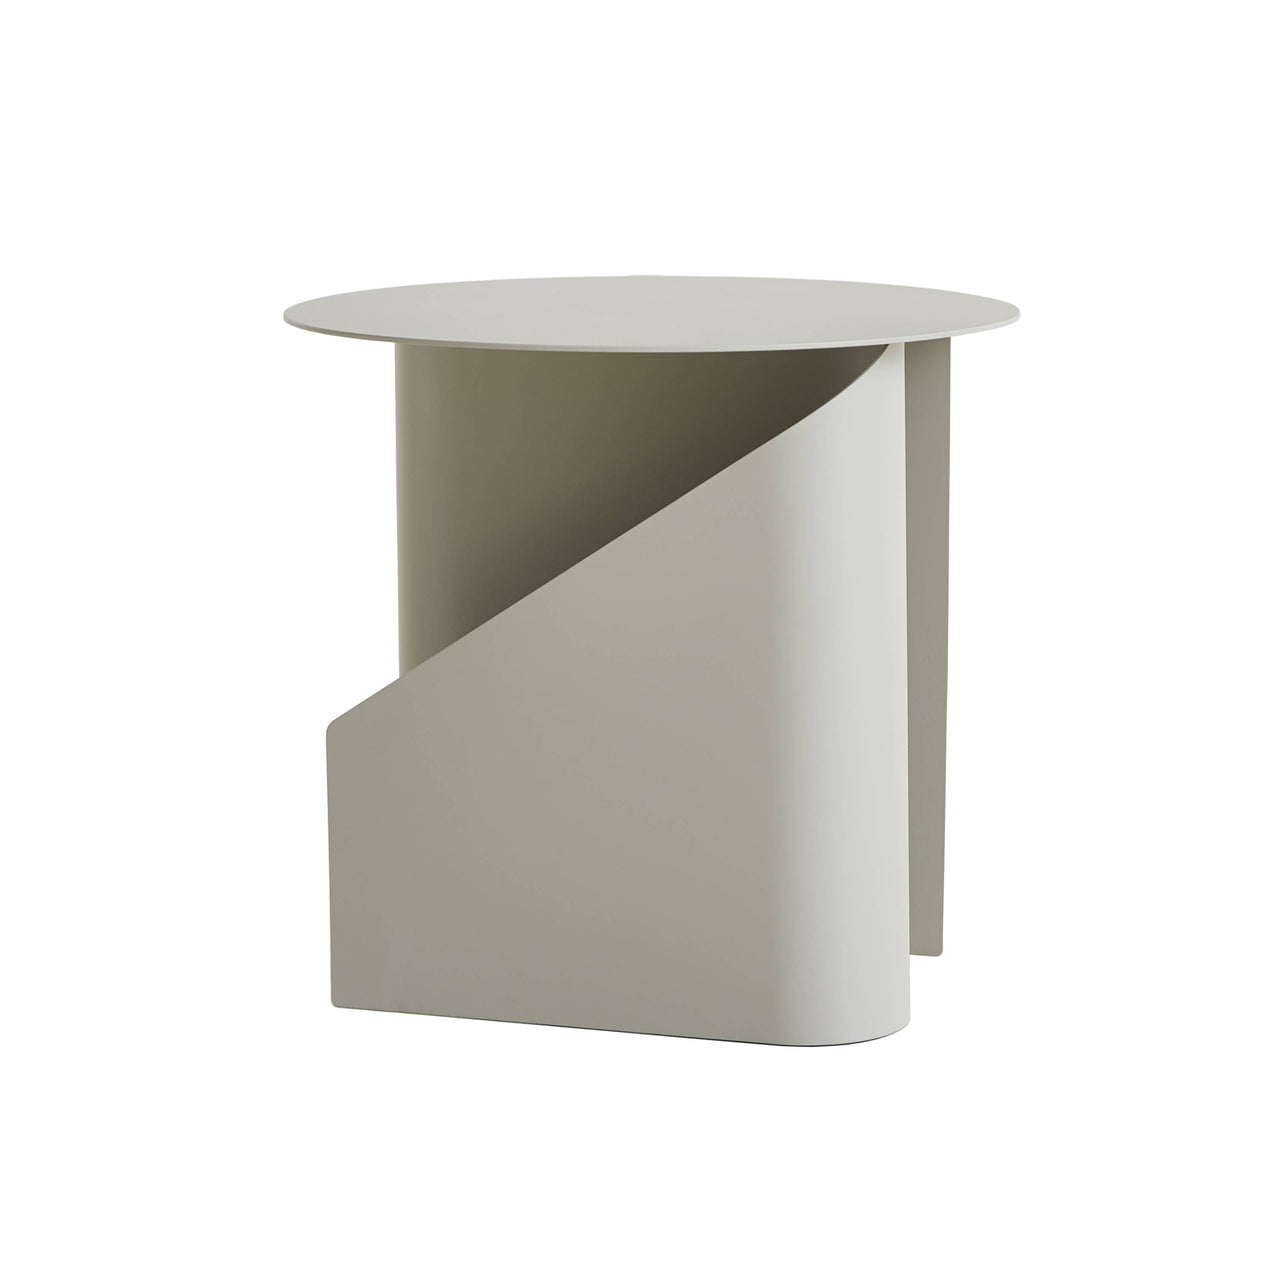 Sentrum Side Table: Warm Grey